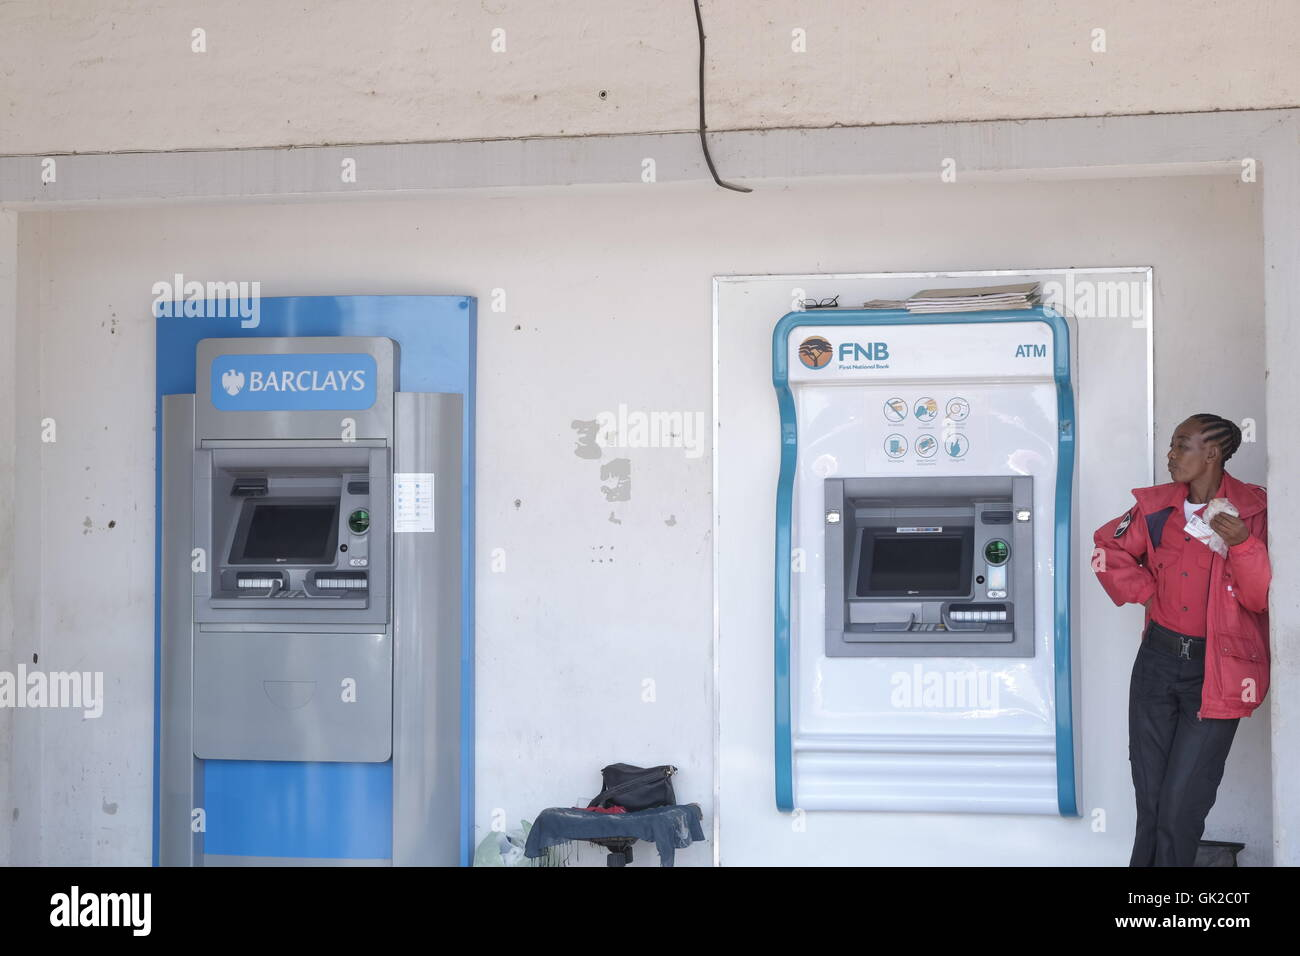 Cash point Auto tellers for Barclays and FNB in Kasane Botswana bring banking to the third world economies. - Stock Image